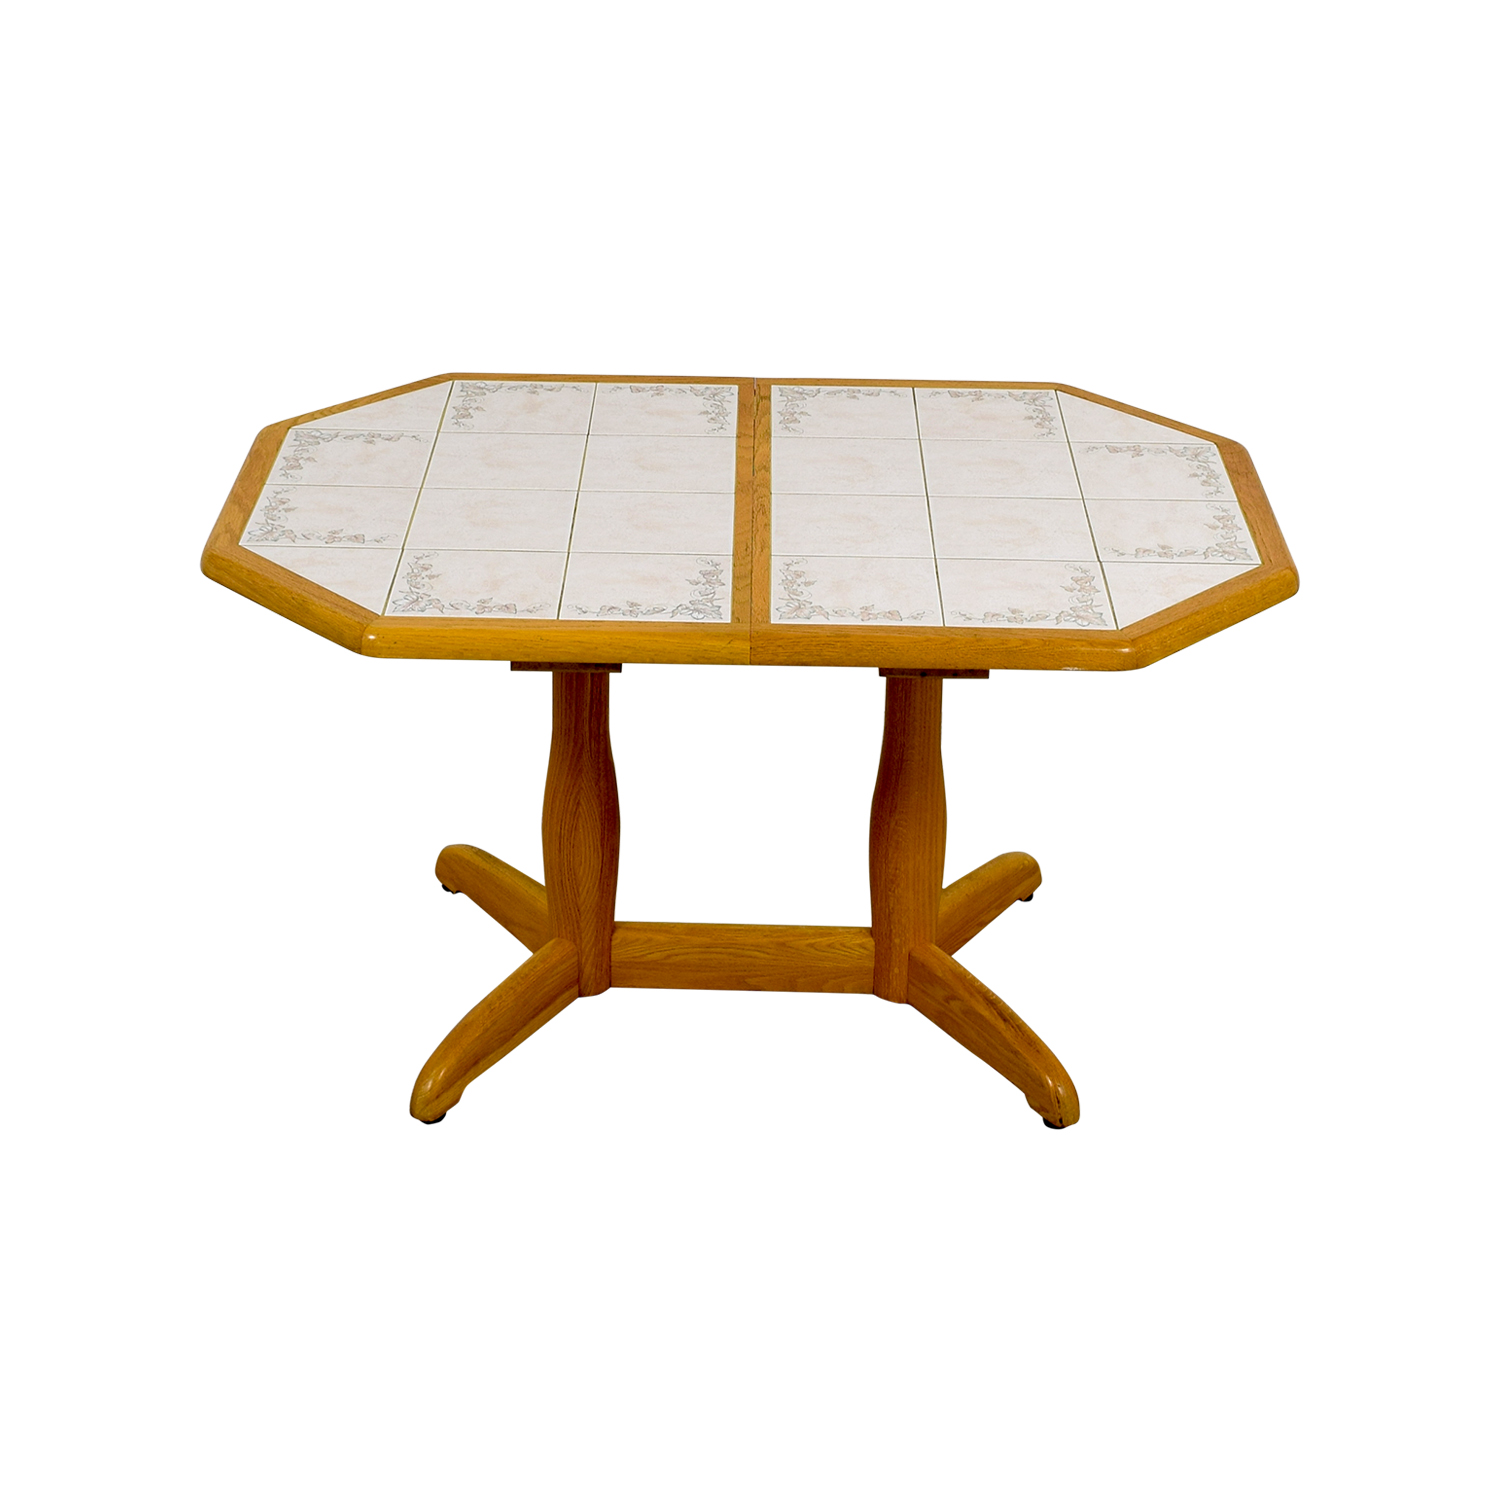 Dinaire Dinaire Wood and Tile Kitchen Table coupon